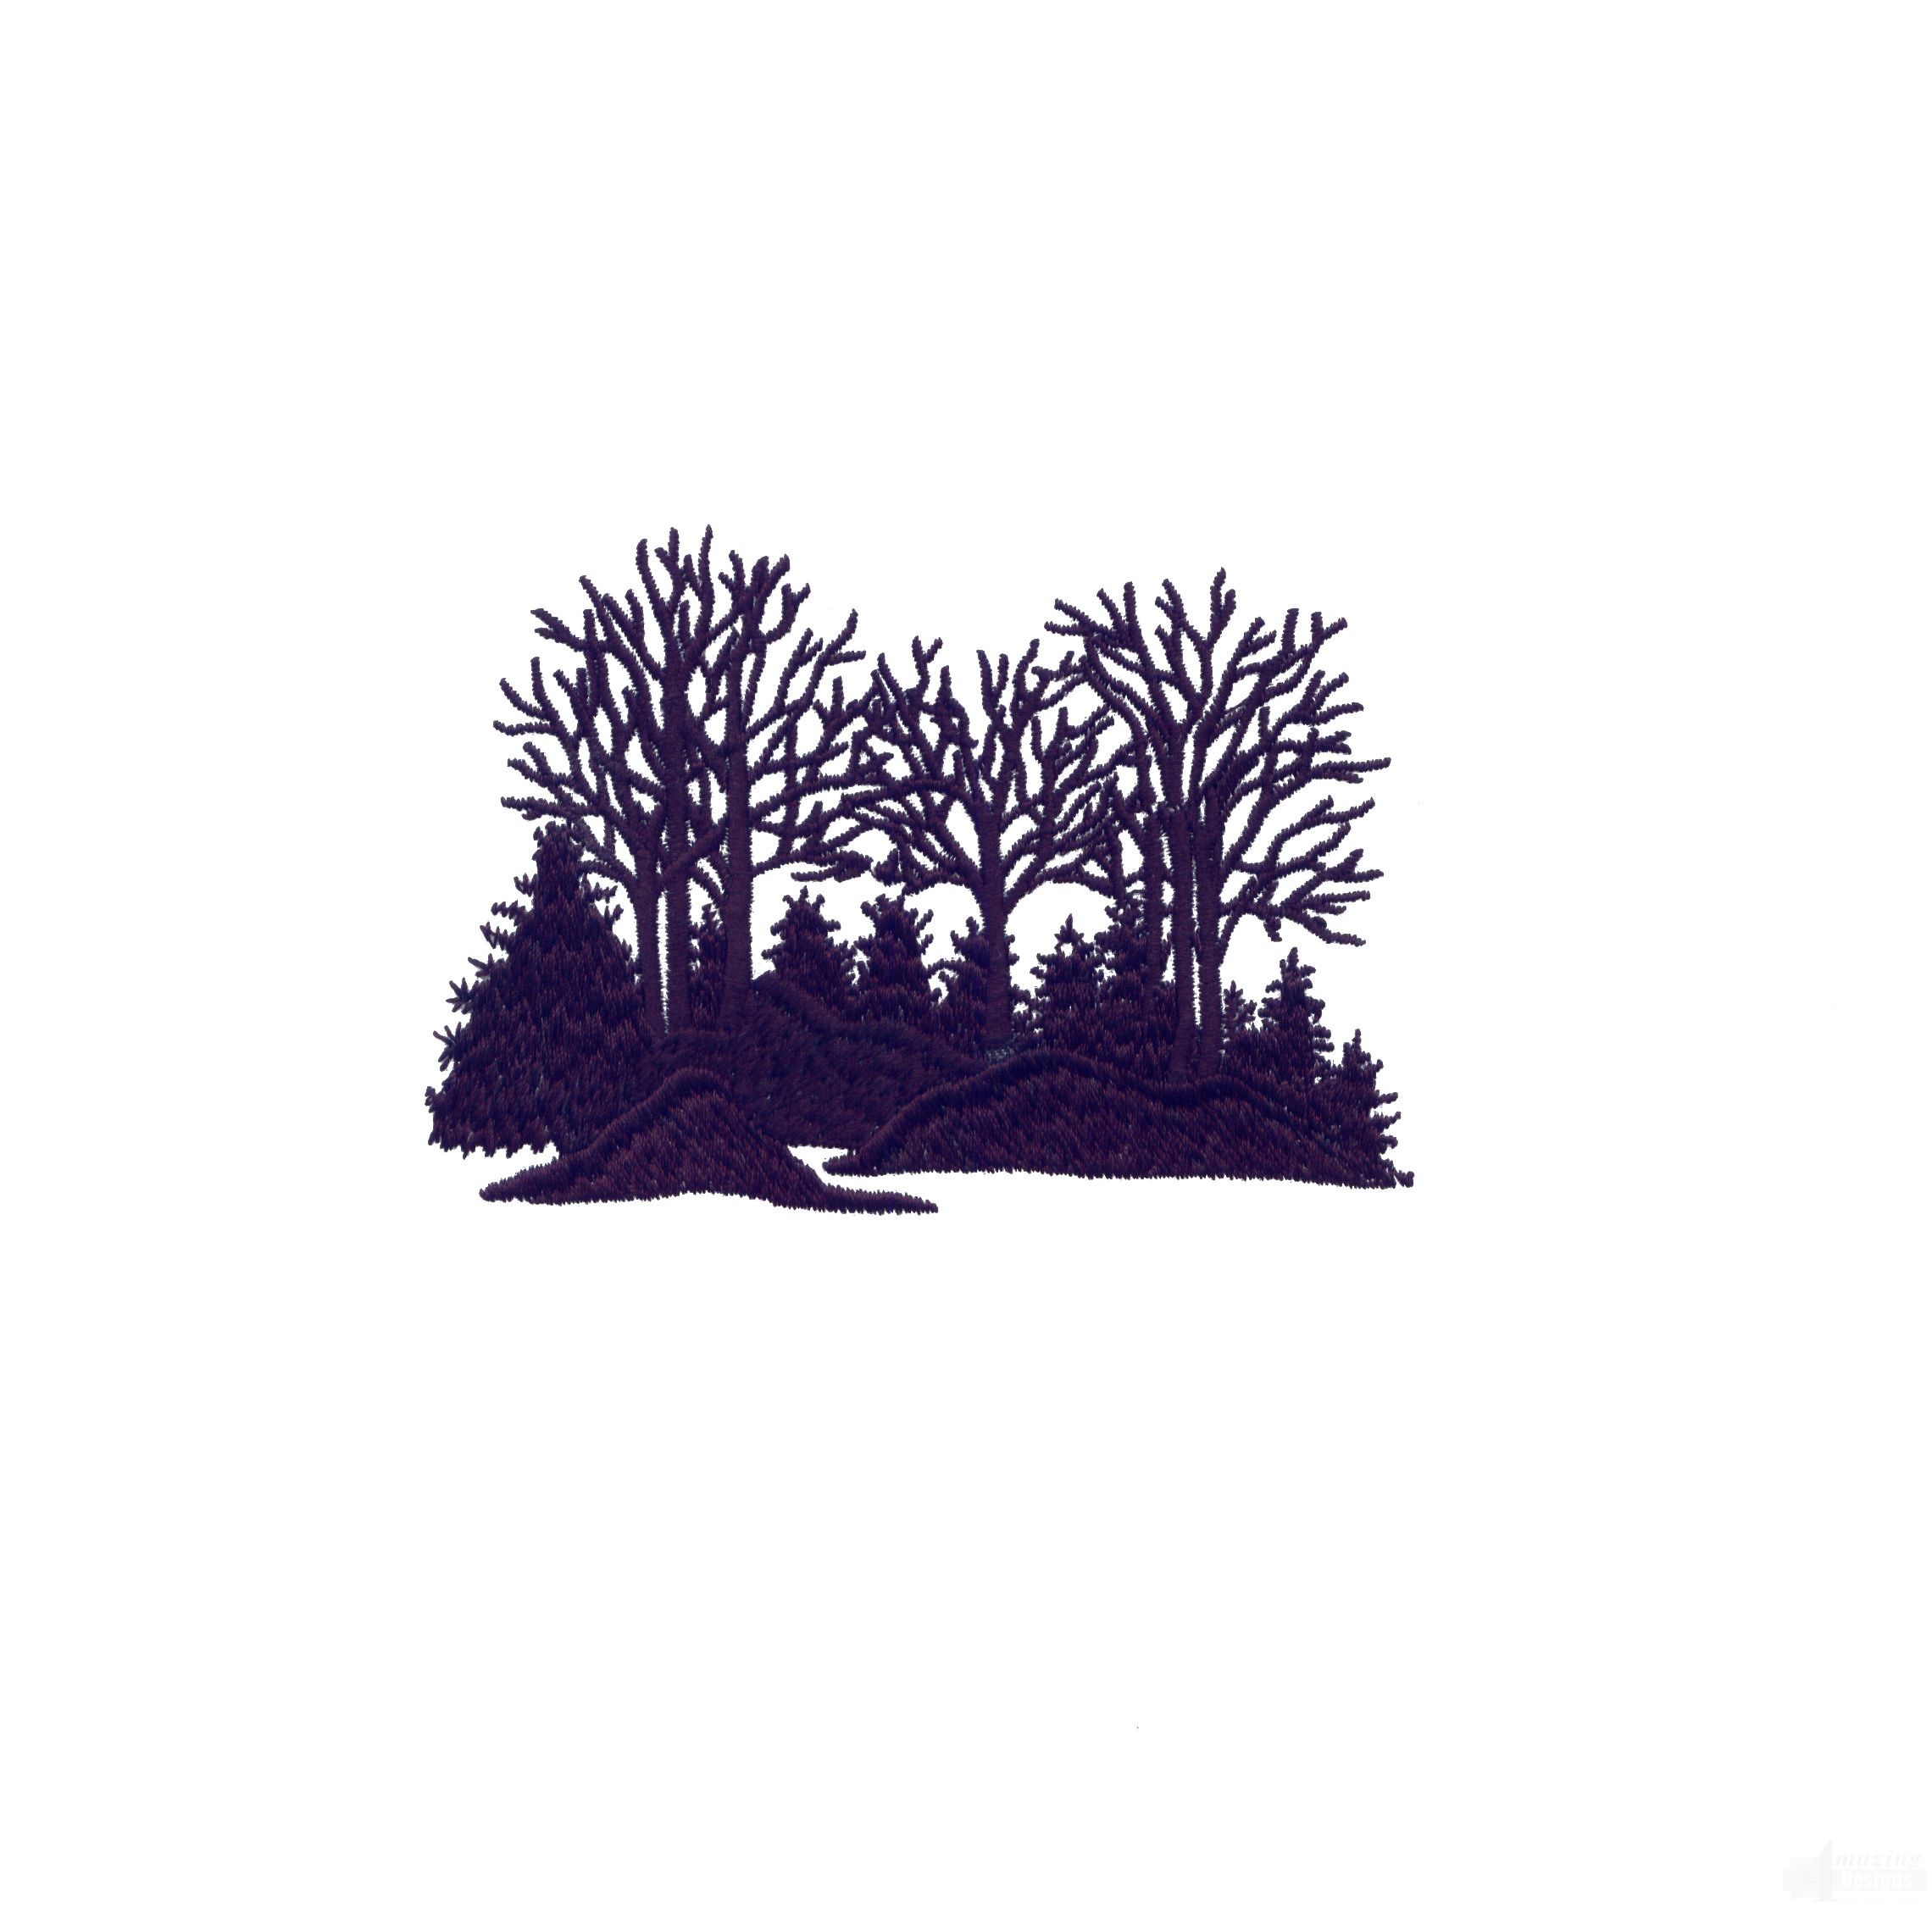 swnmw140 silhouette woods embroidery design